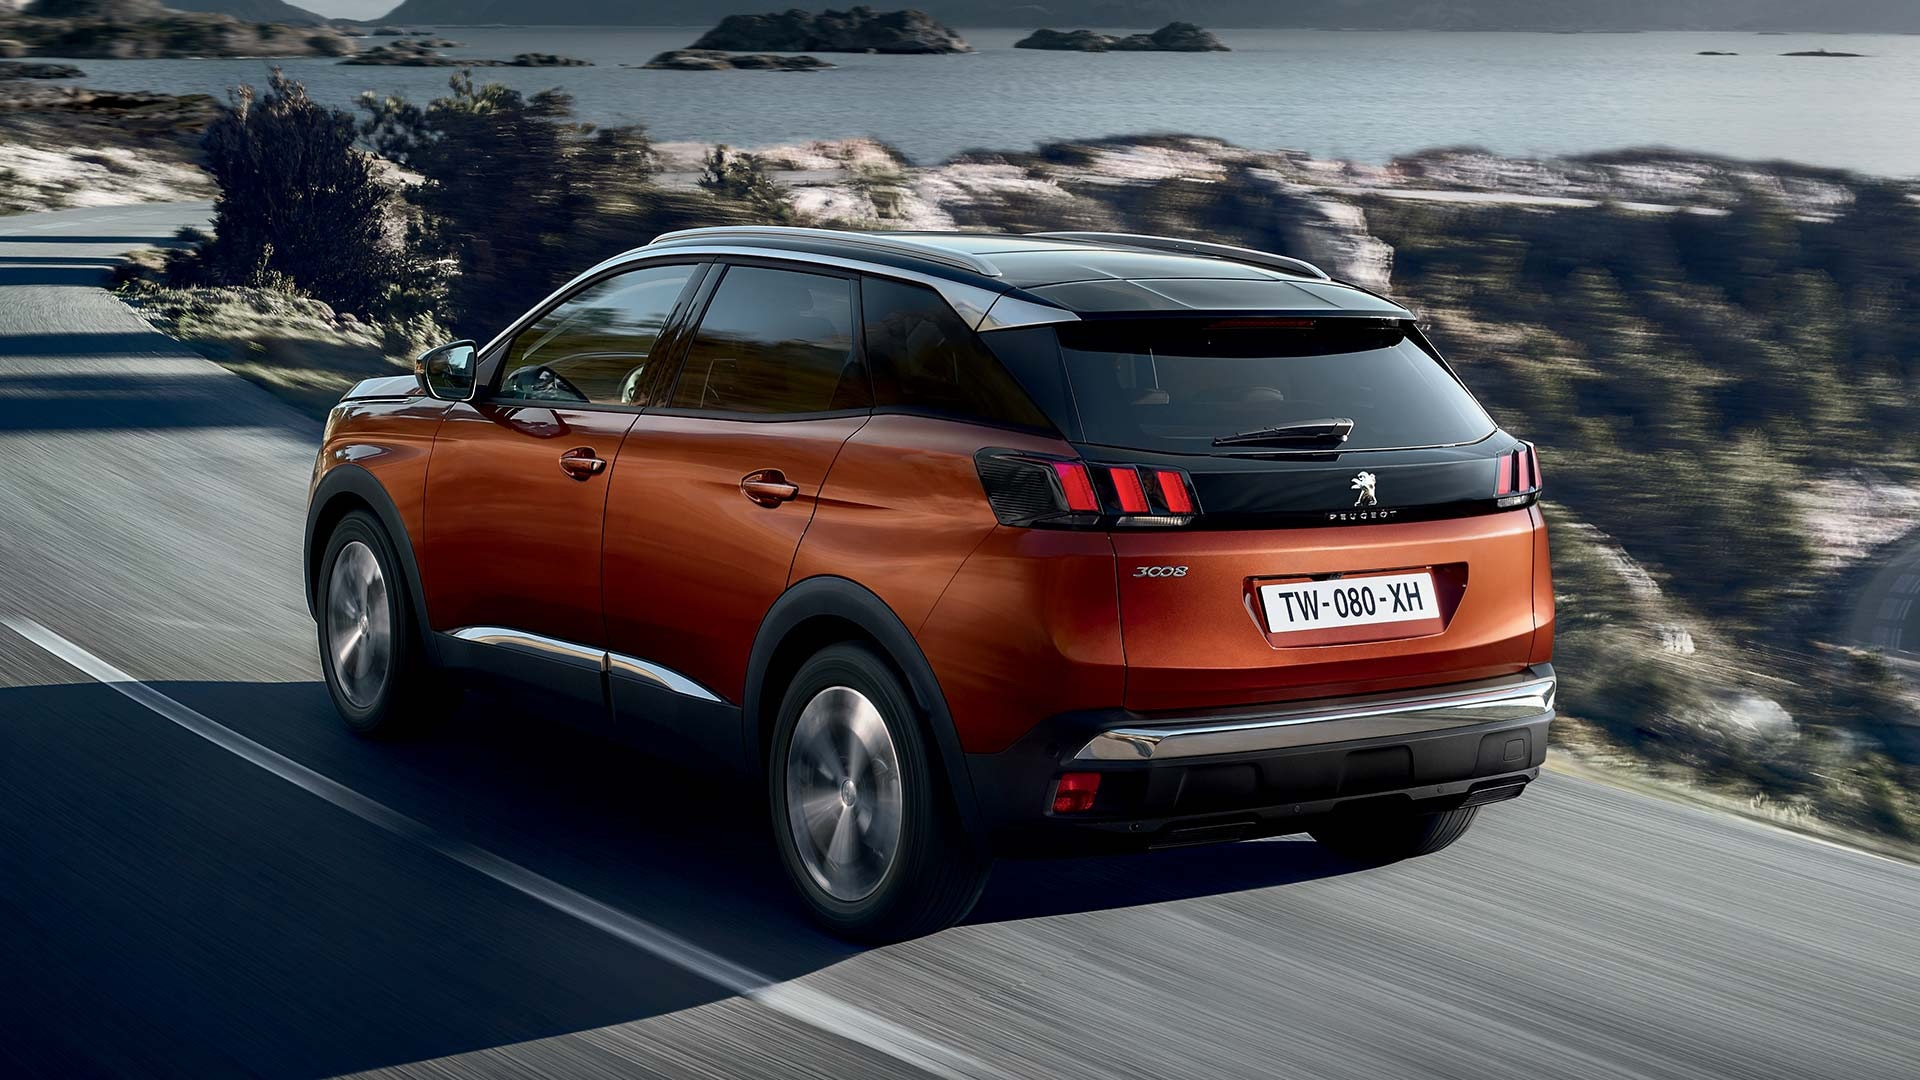 discover the new peugeot 3008 suv - peugeot ireland